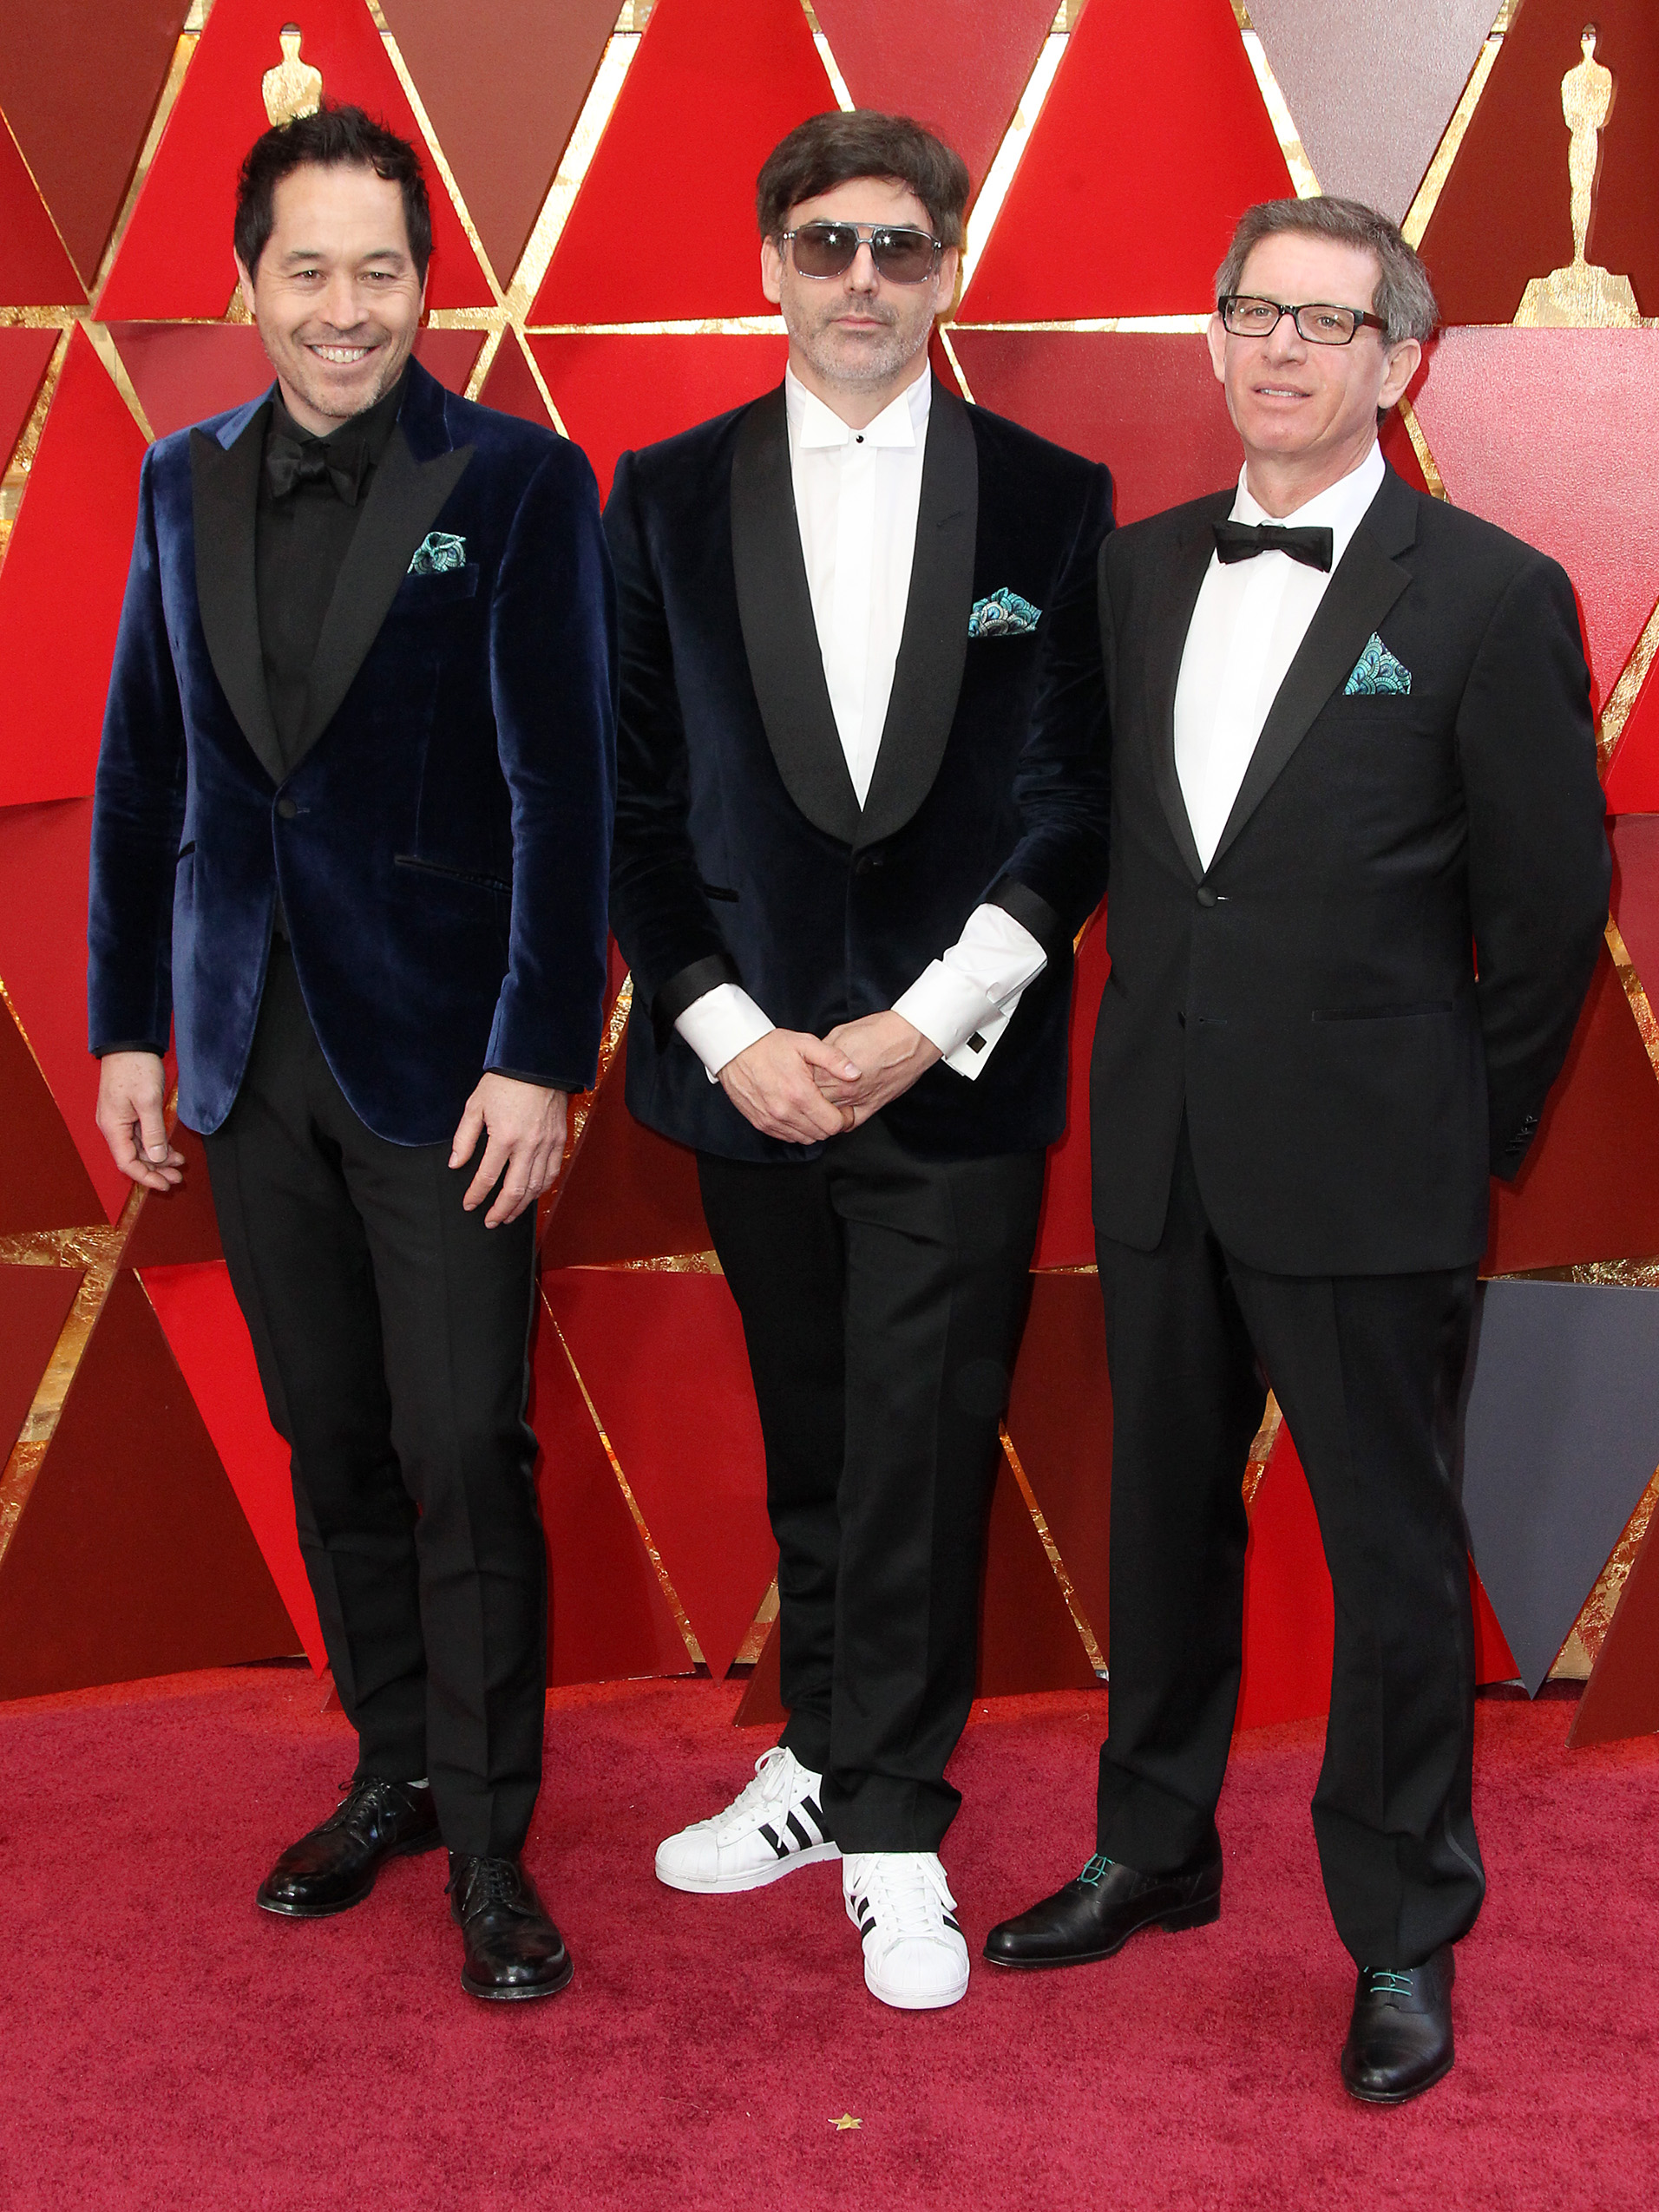 Paul Denham Austerberry, Shane Vieau and Jeffery A. Melvin{&amp;nbsp;}arrive at the 90th Annual Academy Awards (Oscars) held at the Dolby Theater in Hollywood, California. (Image: Adriana M. Barraza/WENN.com)<p></p>